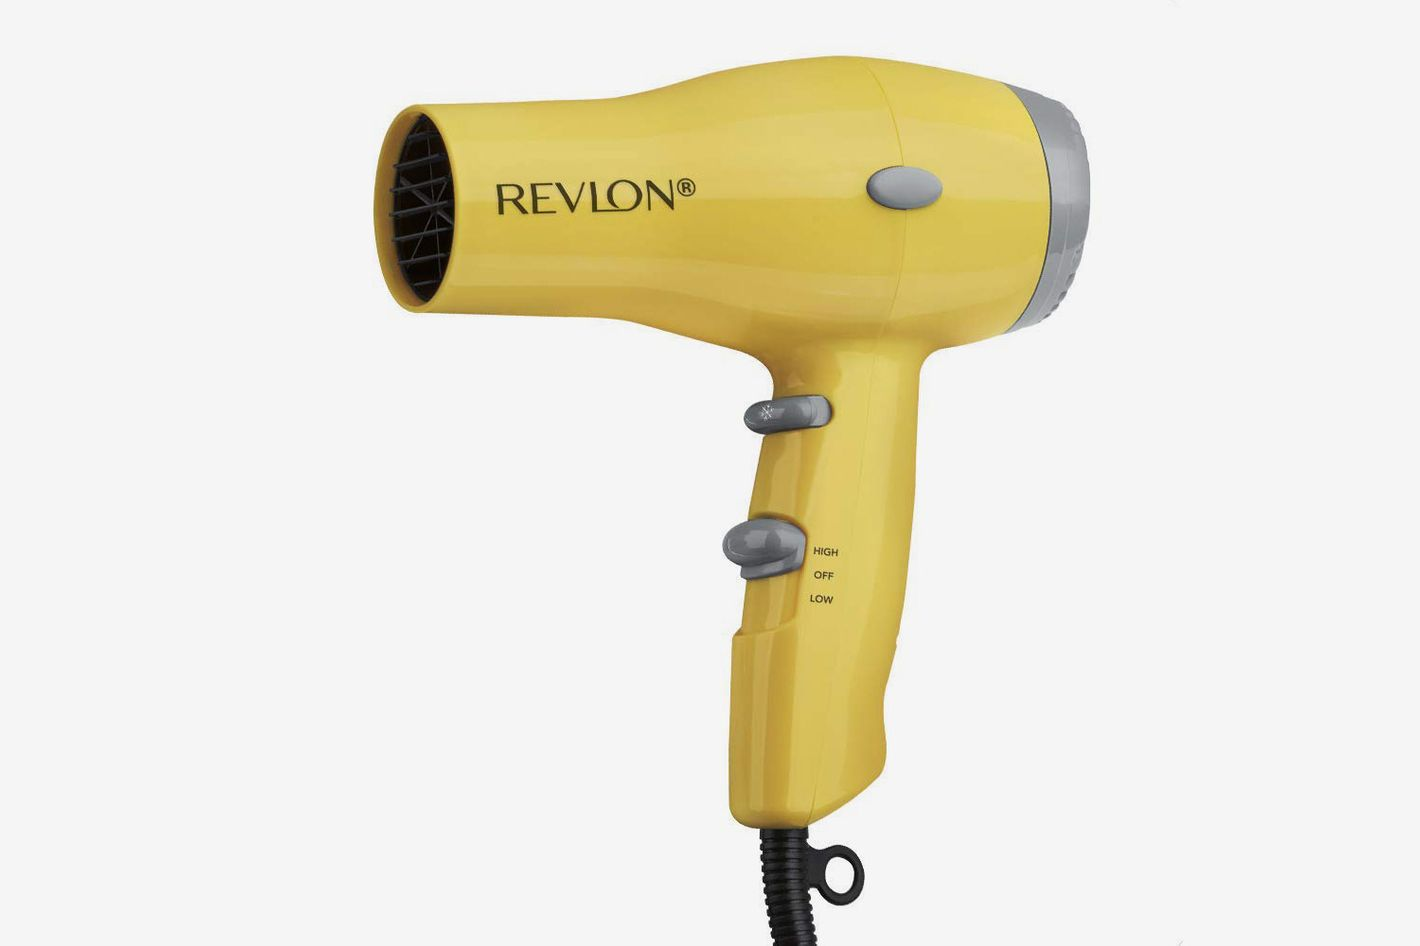 Revlon 1,875-Watt Compact Travel Hair Dryer